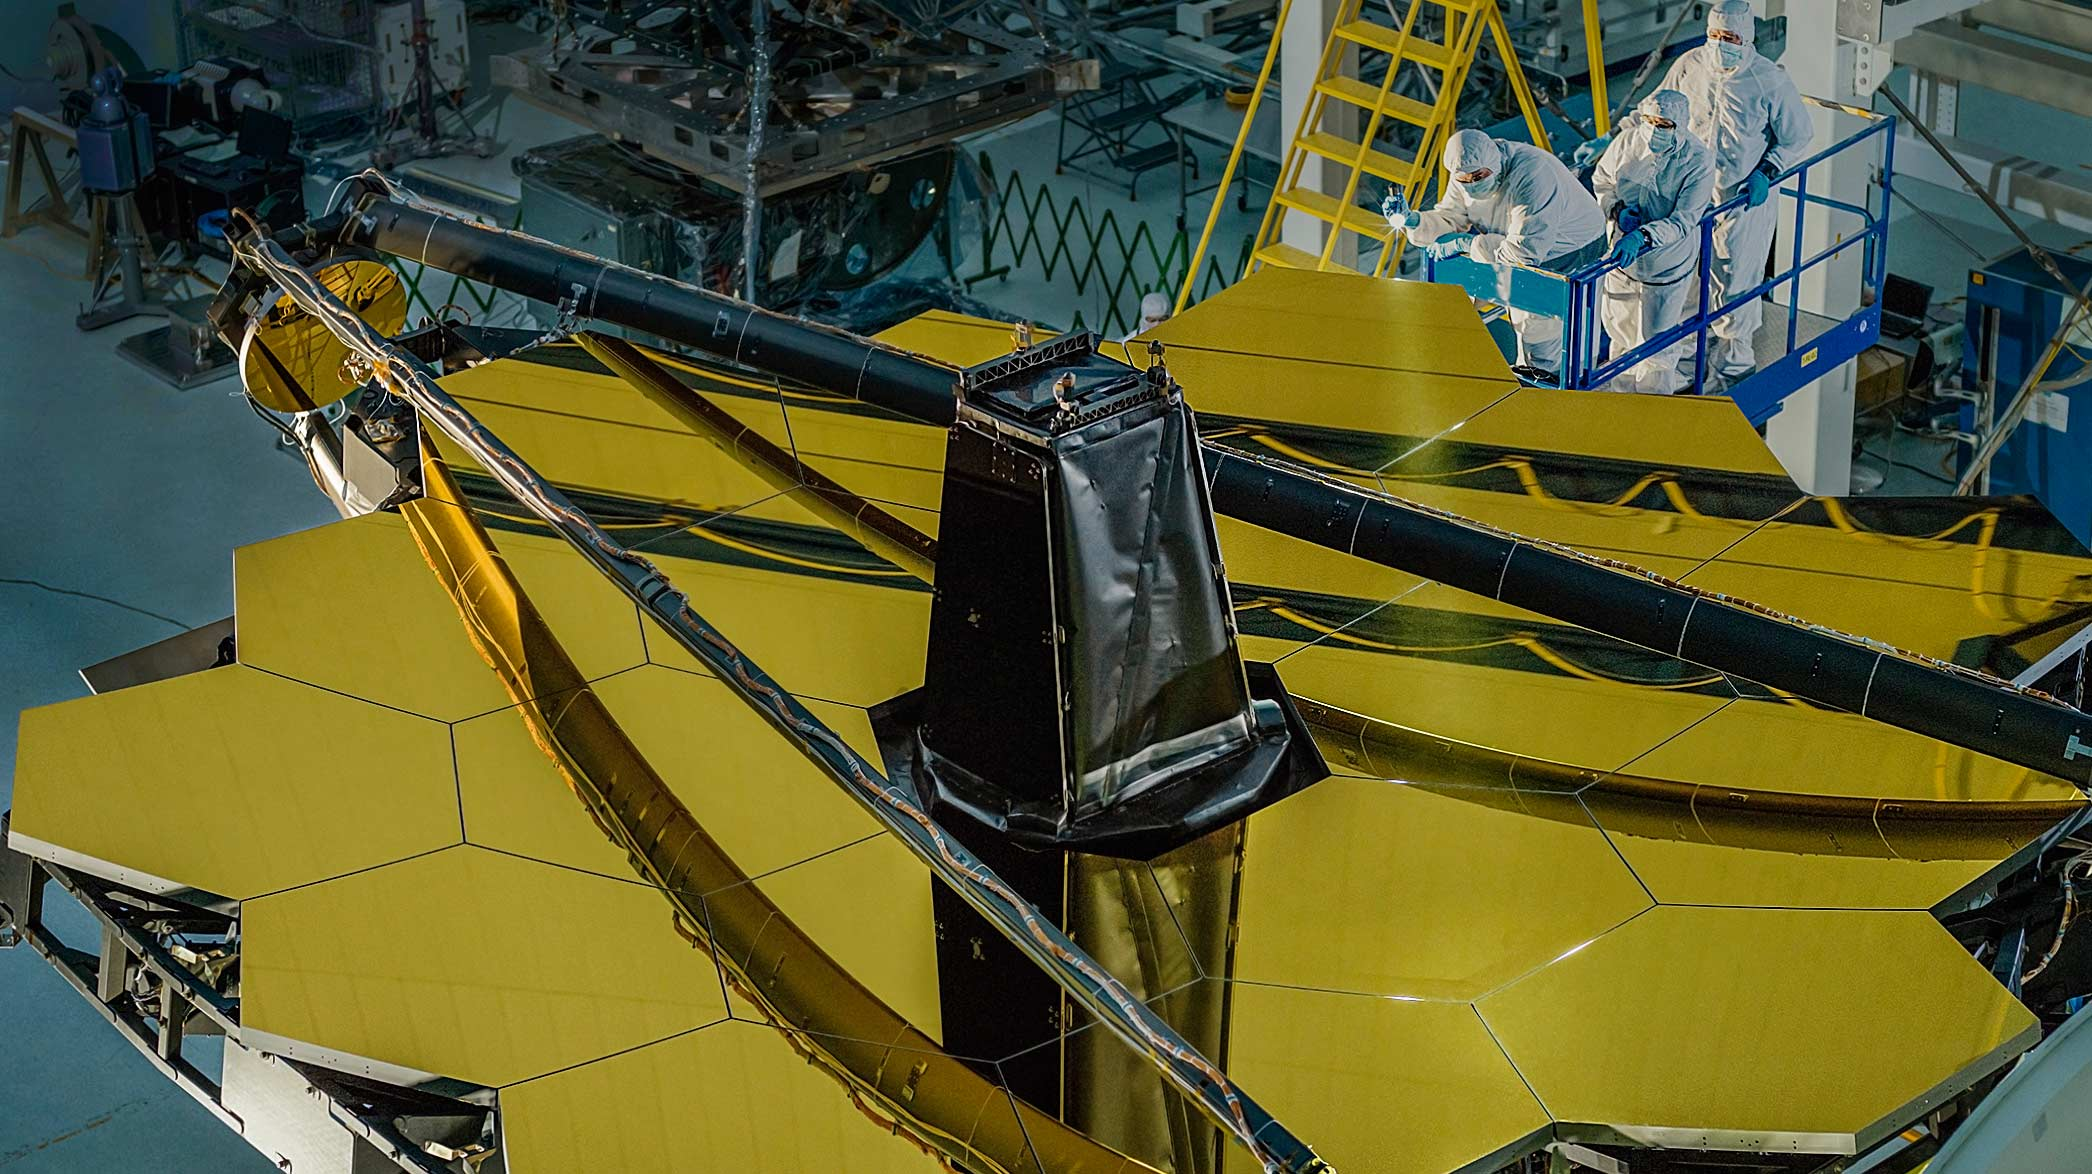 The primary mirror of the James Webb Space Telescope is completed.